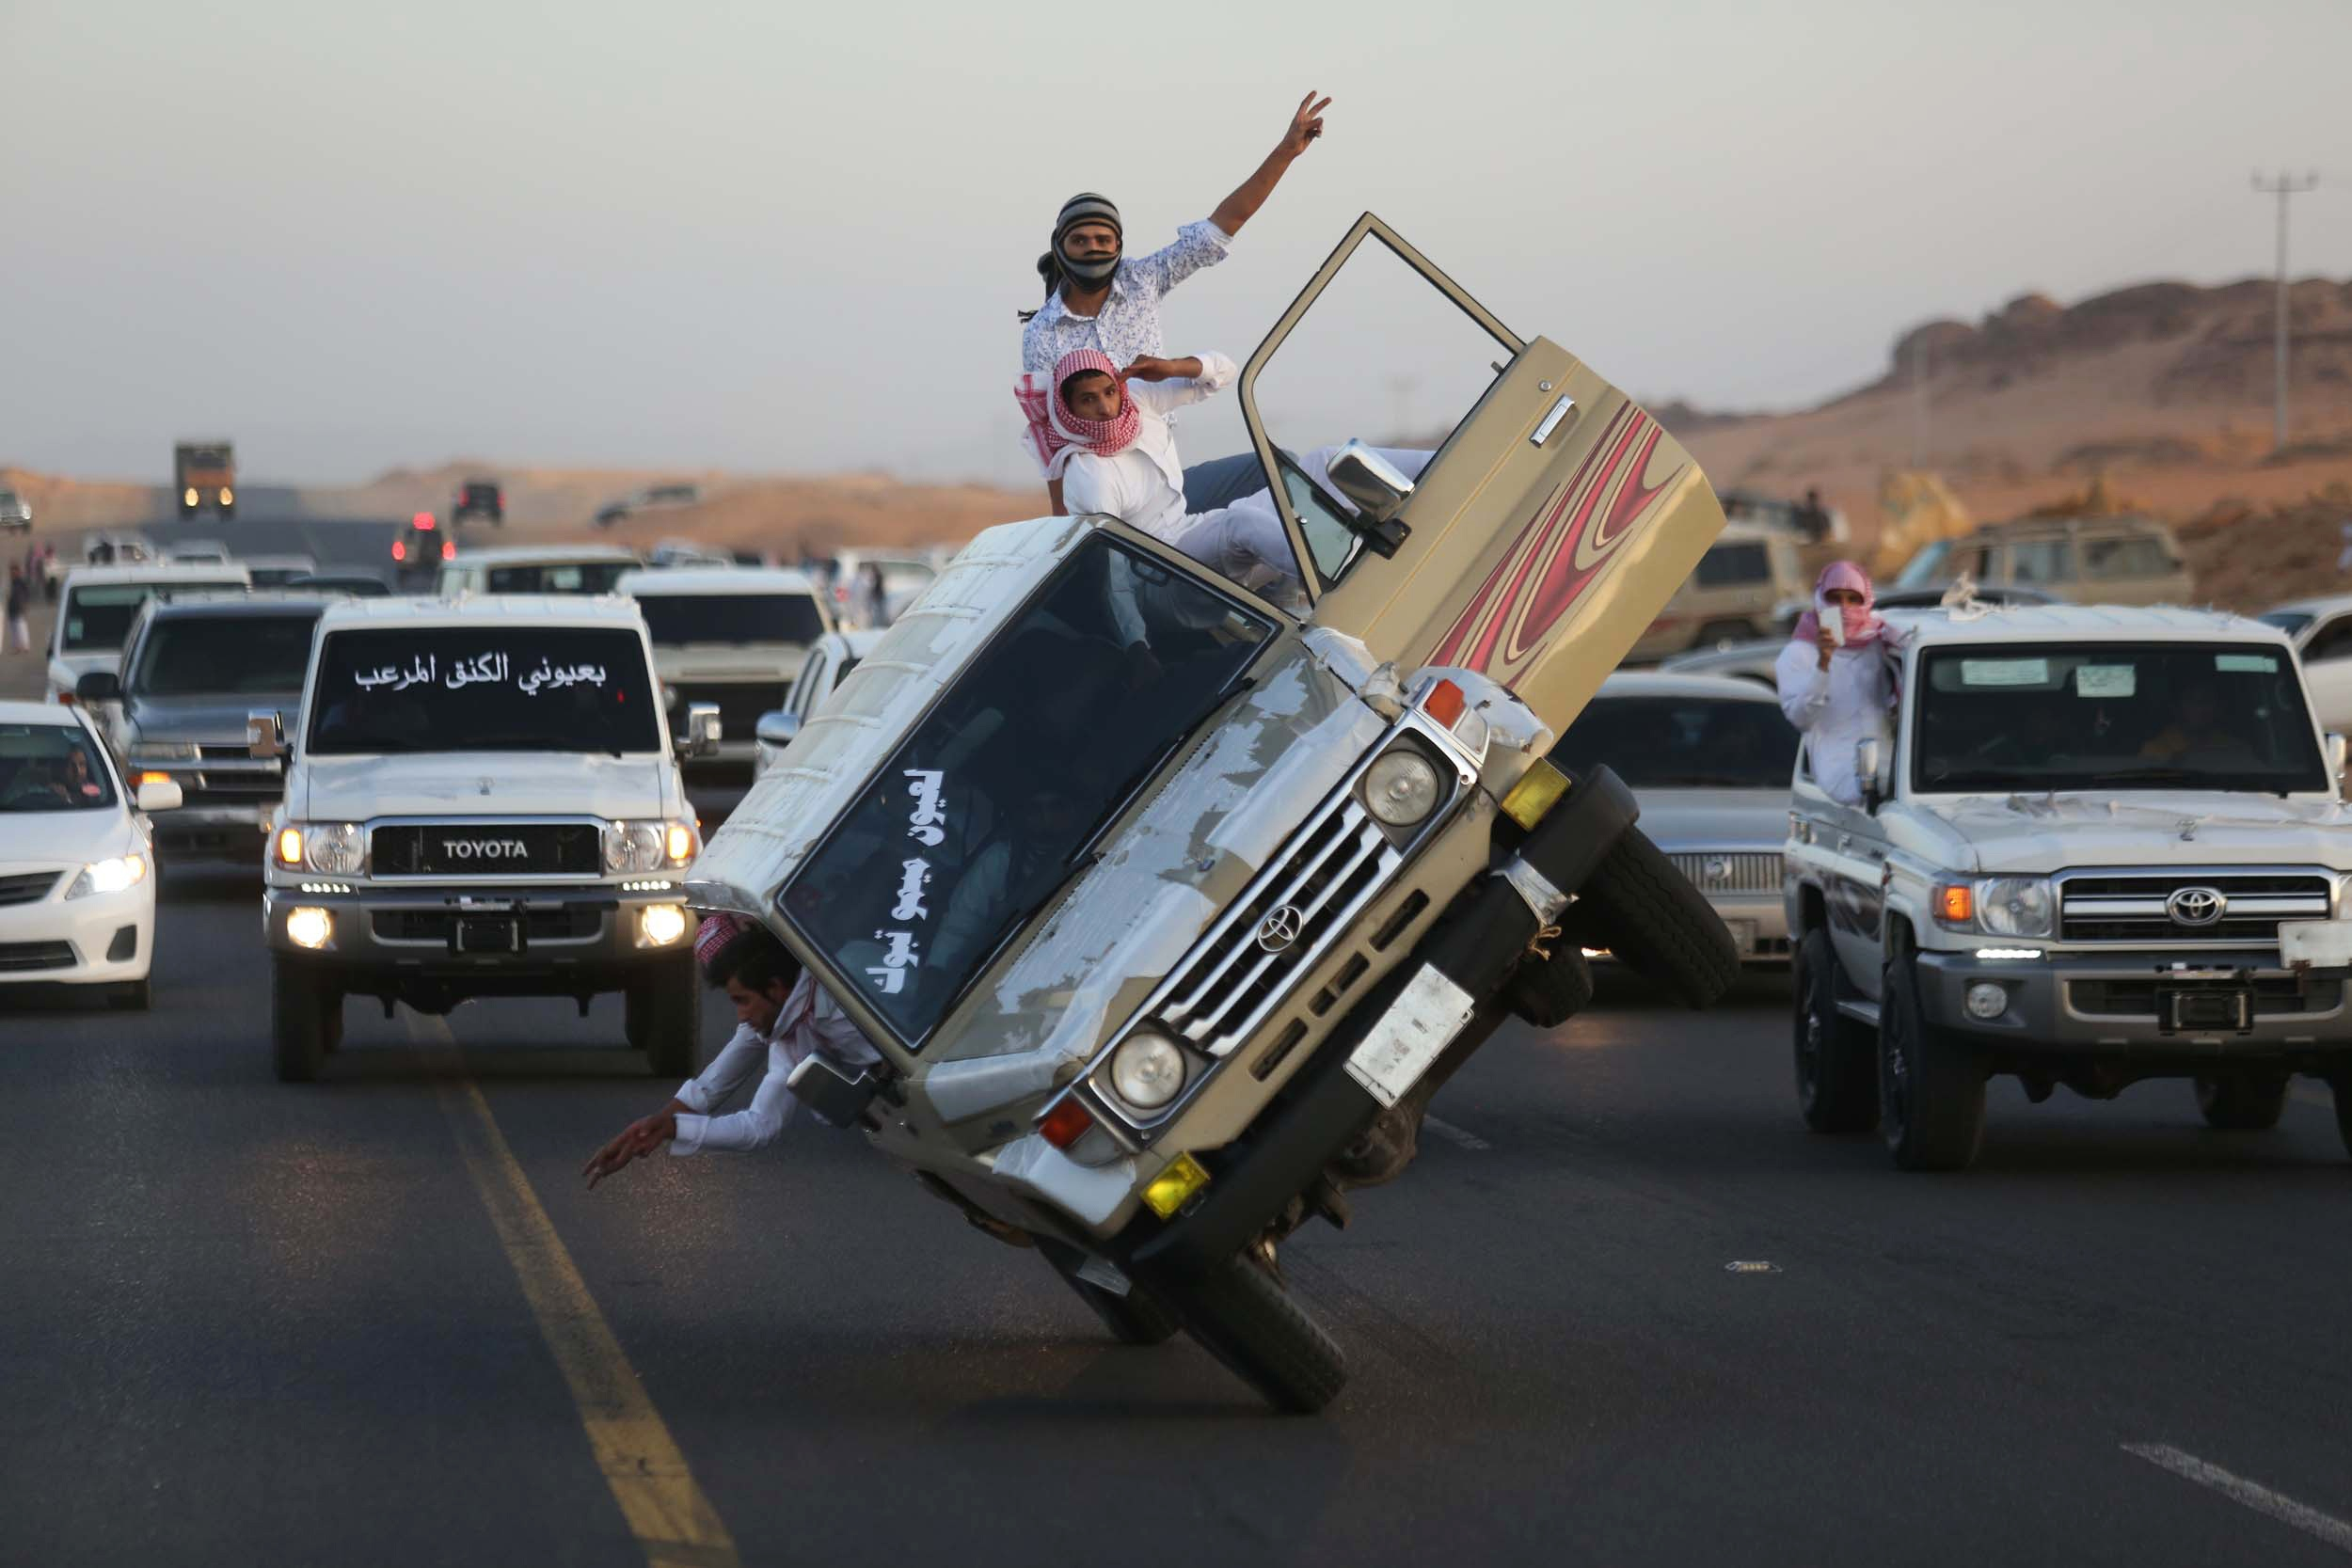 """Saudi youths demonstrate a stunt known as """"sidewall skiing"""" (driving on two wheels) in the northern city of Tabuk"""